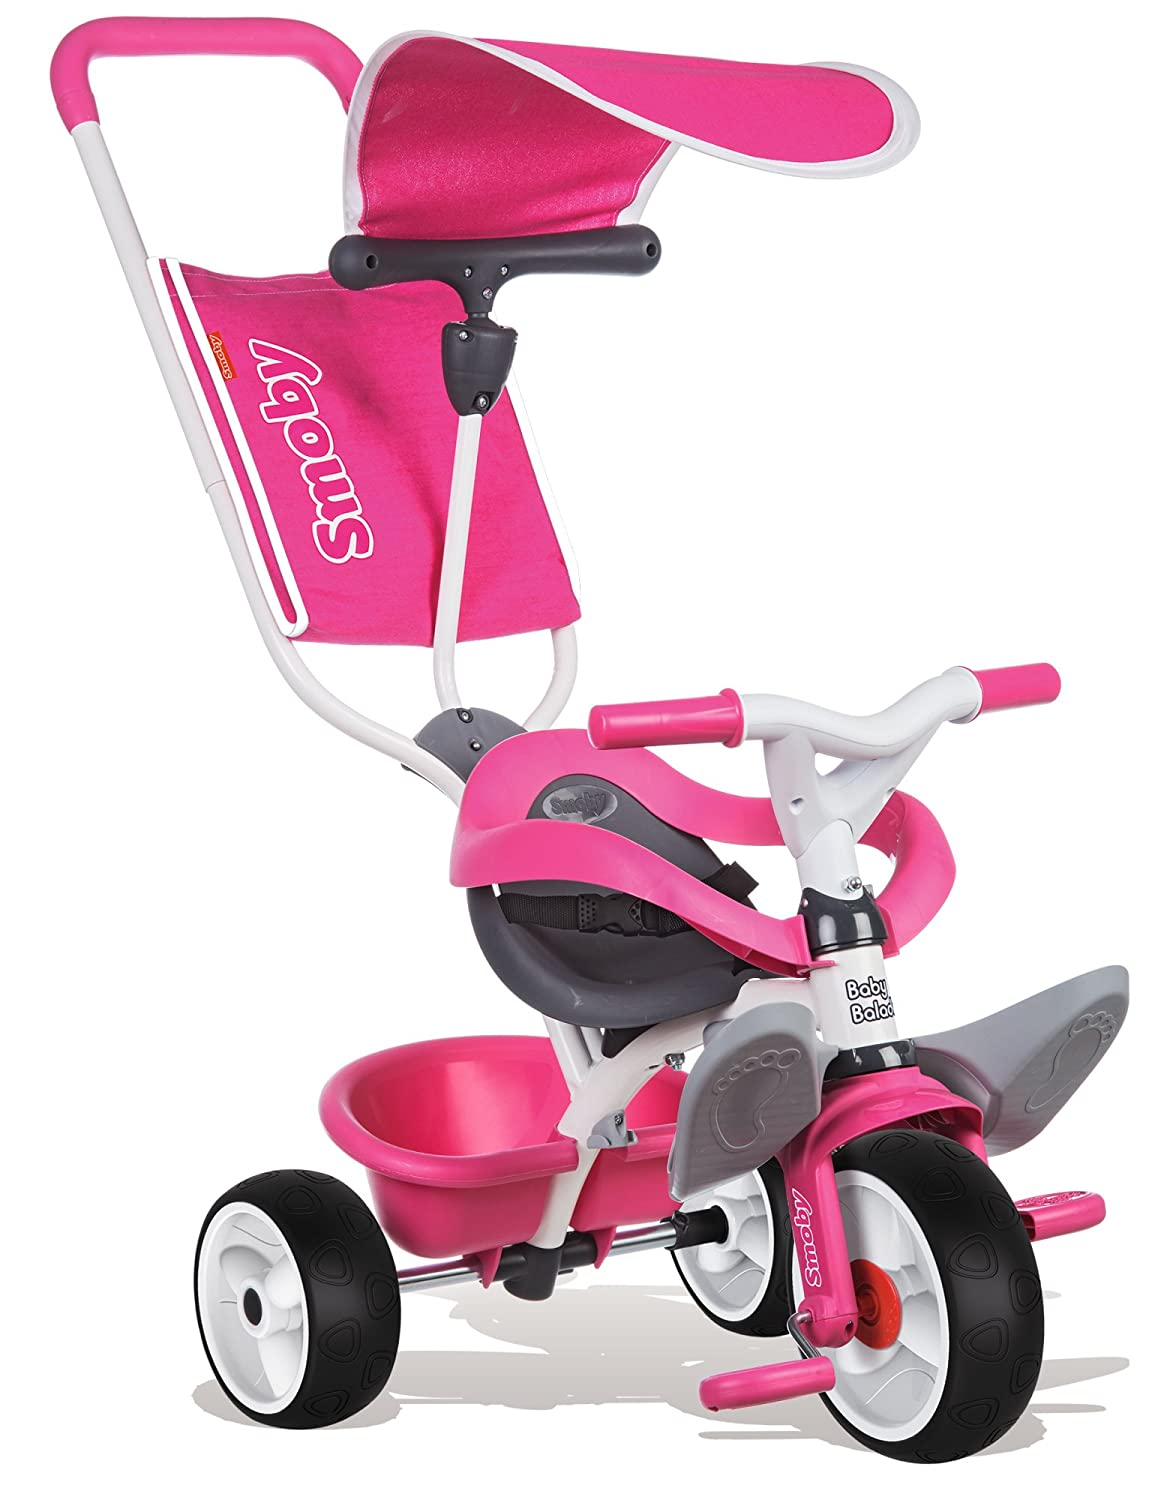 Smoby Triciclo baby balade color rosa